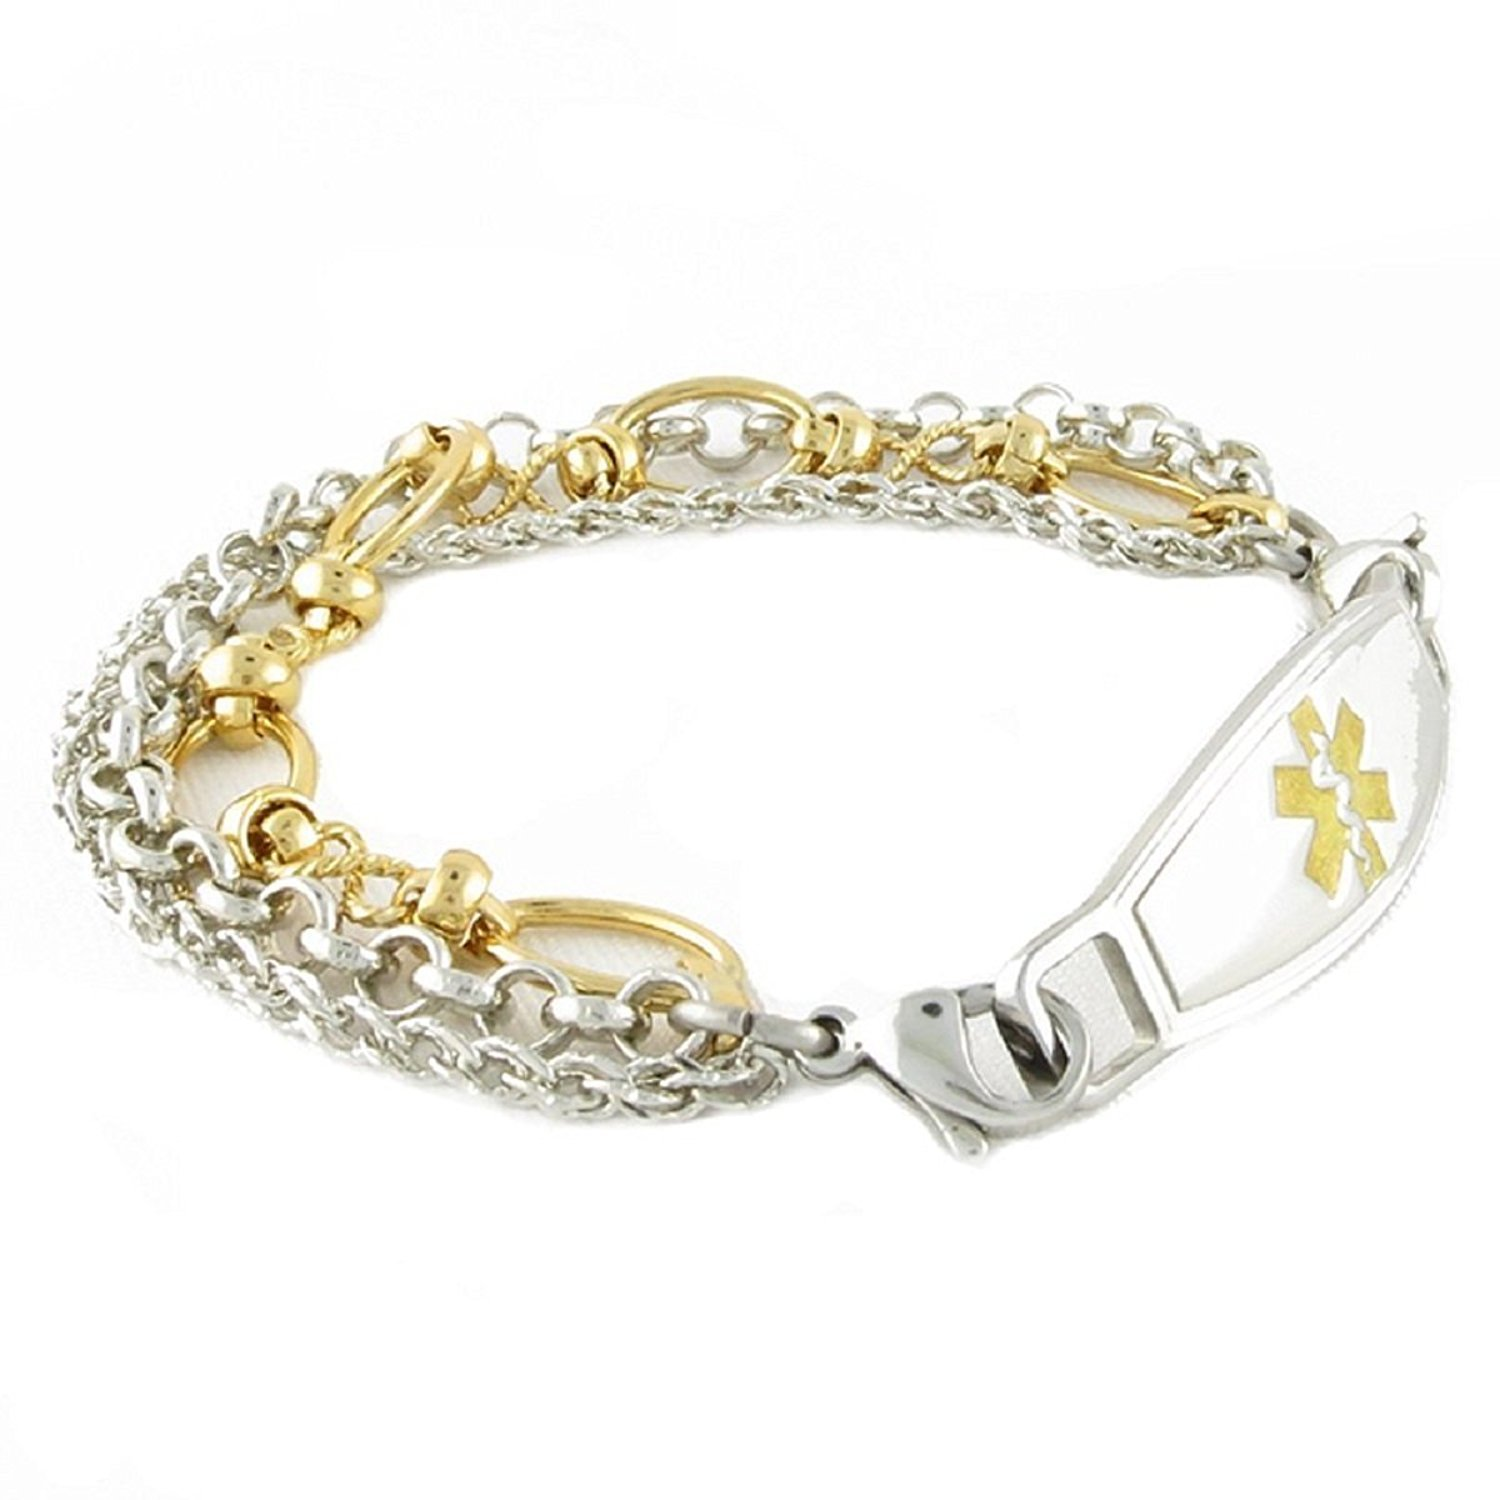 Women's Medical Alert ID Bracelet - Custom Engraving Included, Gold Antique, Stainless Steel - Trio, Size 7.75